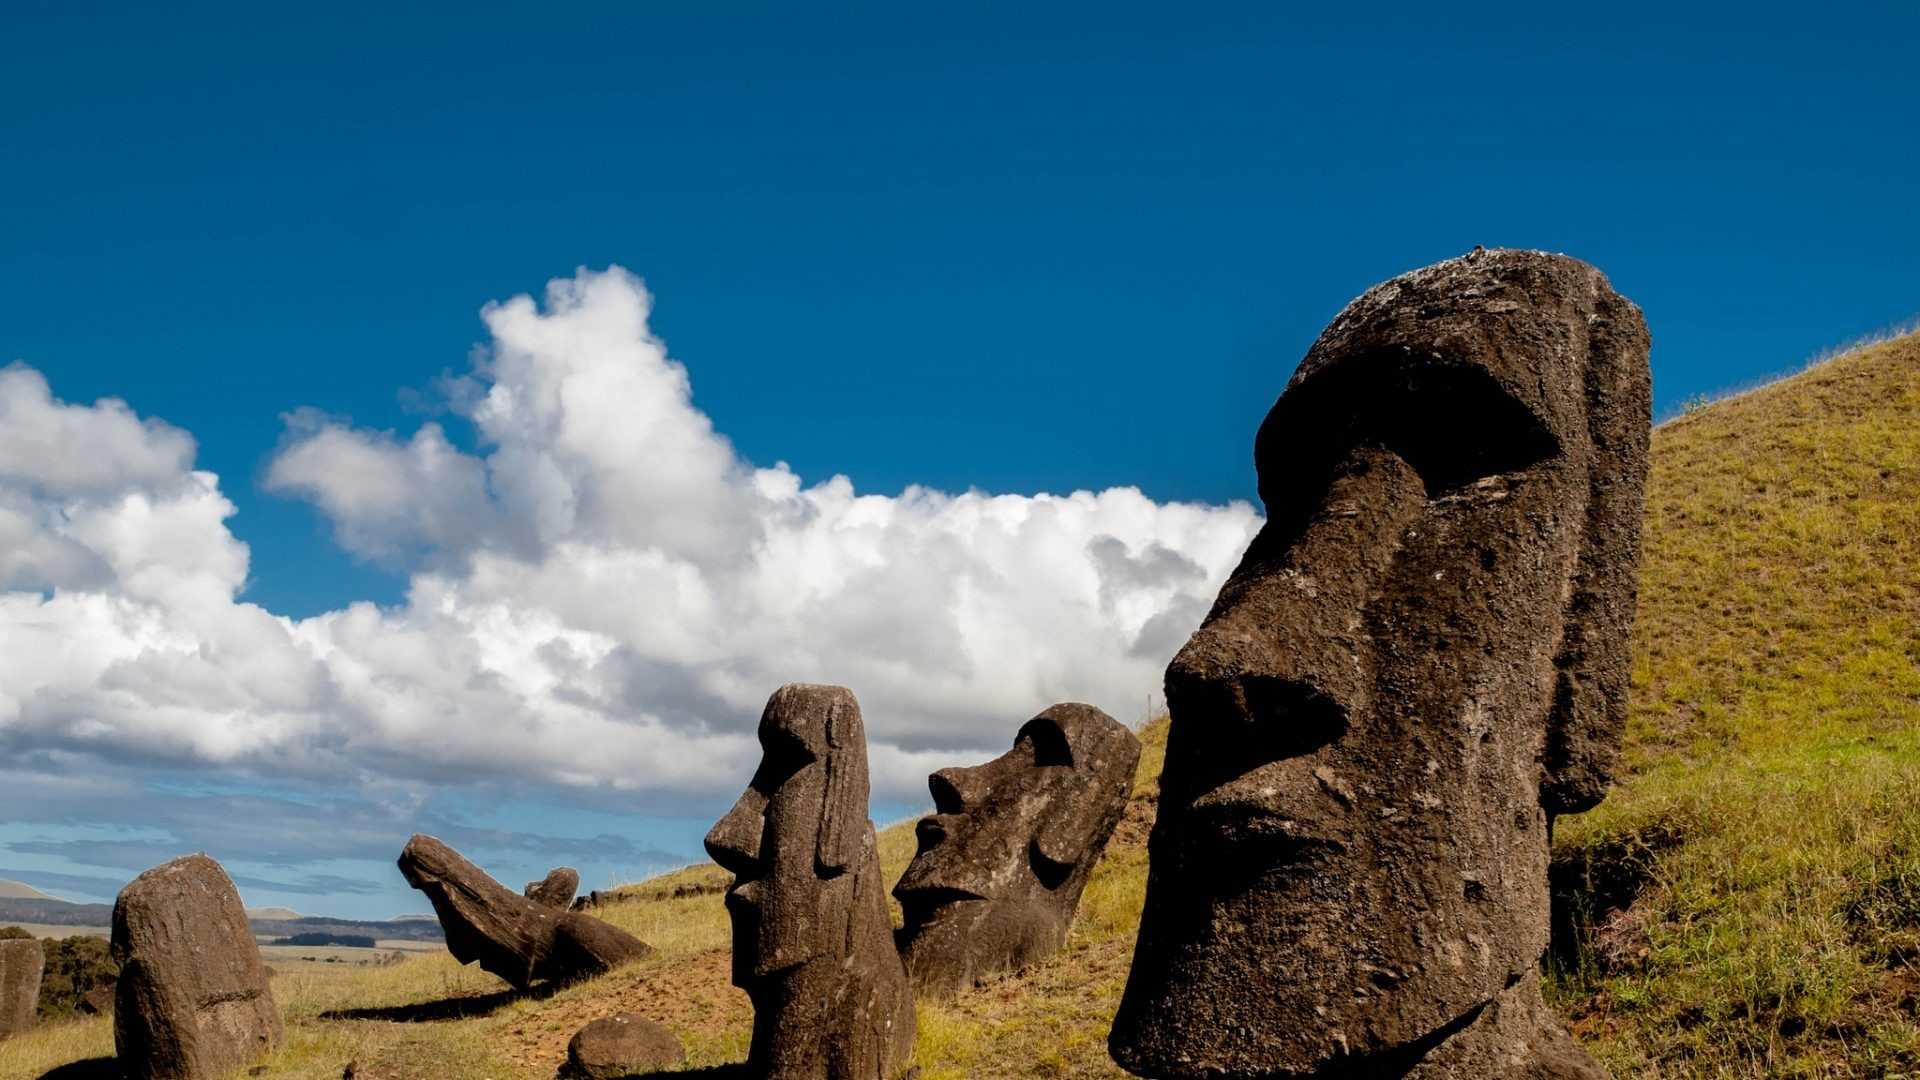 Res: 1920x1080, Nature HD Image Wallpaper chile easter island rapa nui moai statue carved  image idol 101822